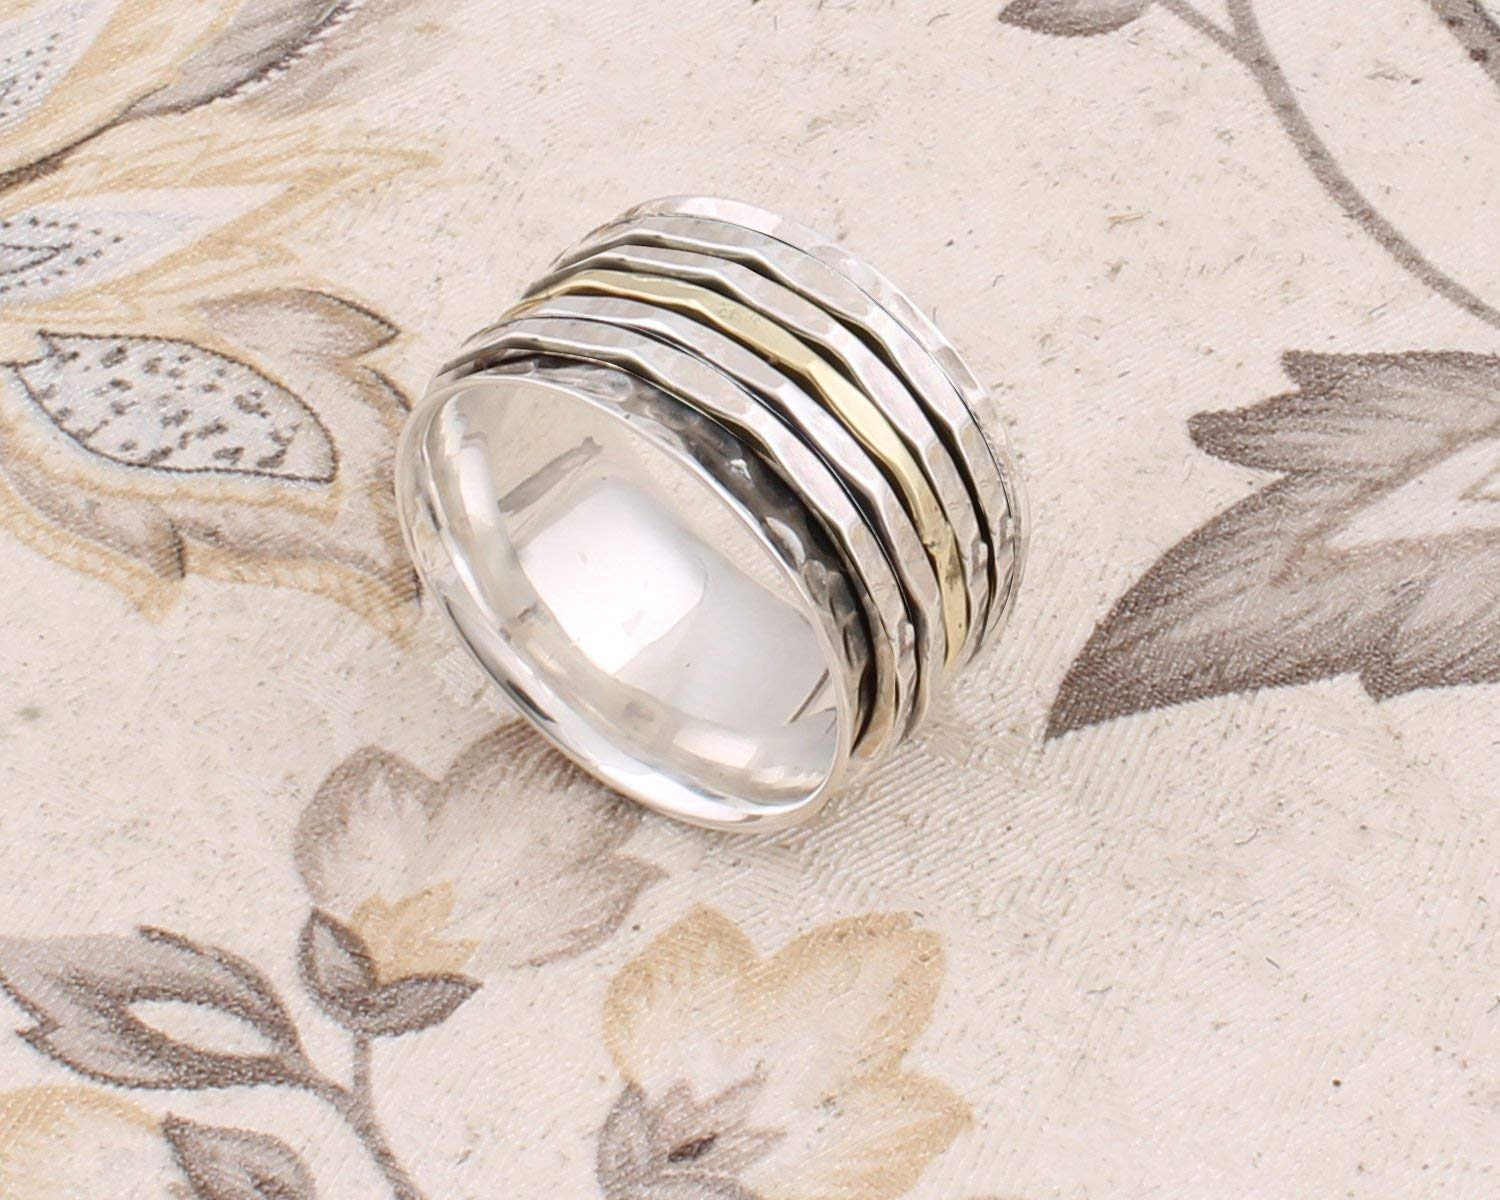 3 Tone Spinner Ring Beaded Spinner ring Thumb ring Gift Meditation Wide Band Silver Spinner Anxiety Ring Floral Texture Band Ring